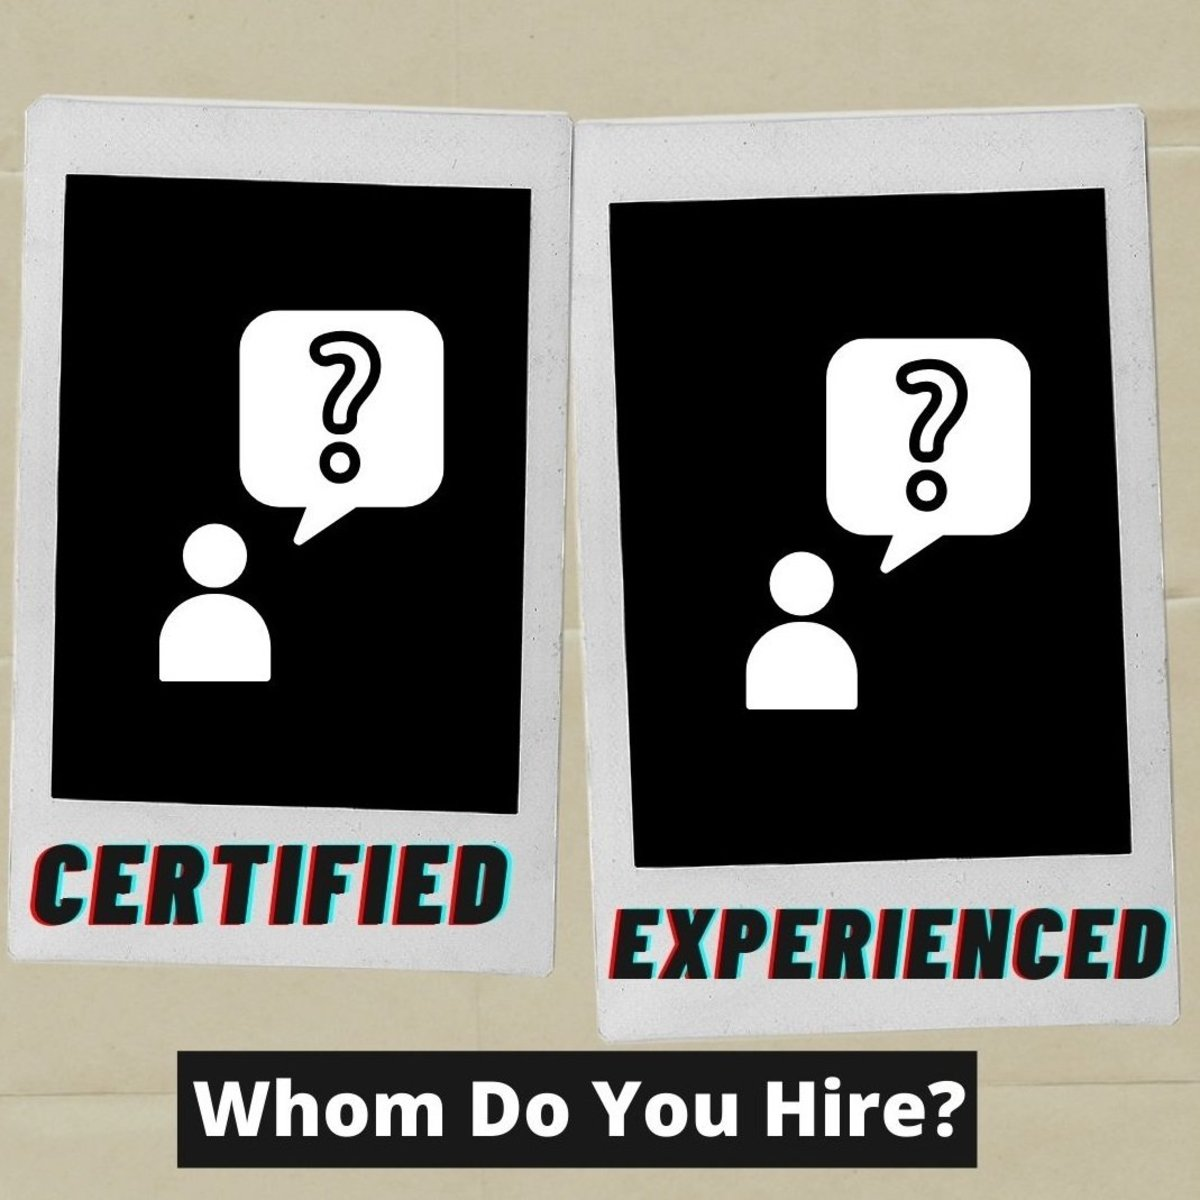 certified-versus-experienced-whom-do-you-hire